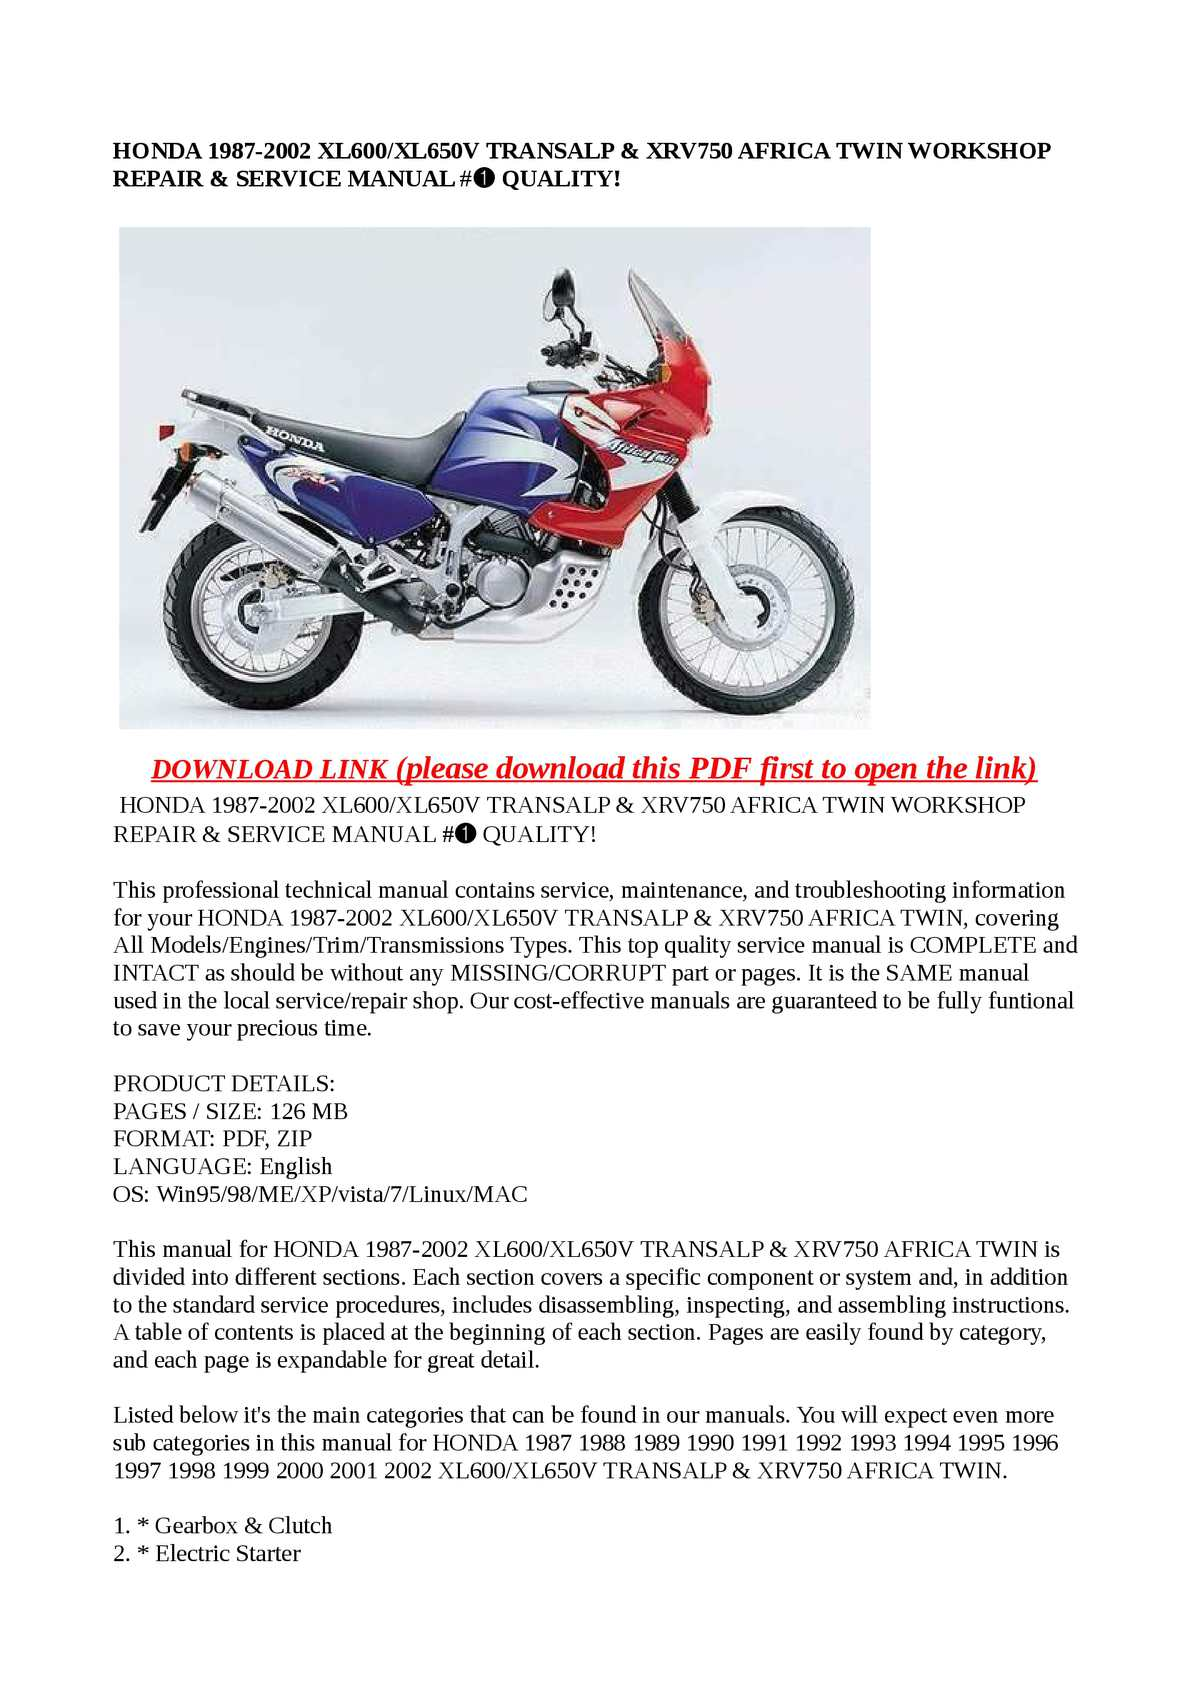 Calaméo - HONDA 1987-2002 XL600/XL650V TRANSALP & XRV750 AFRICA TWIN WORKSHOP  REPAIR & SERVICE MANUAL #➀ QUALITY!